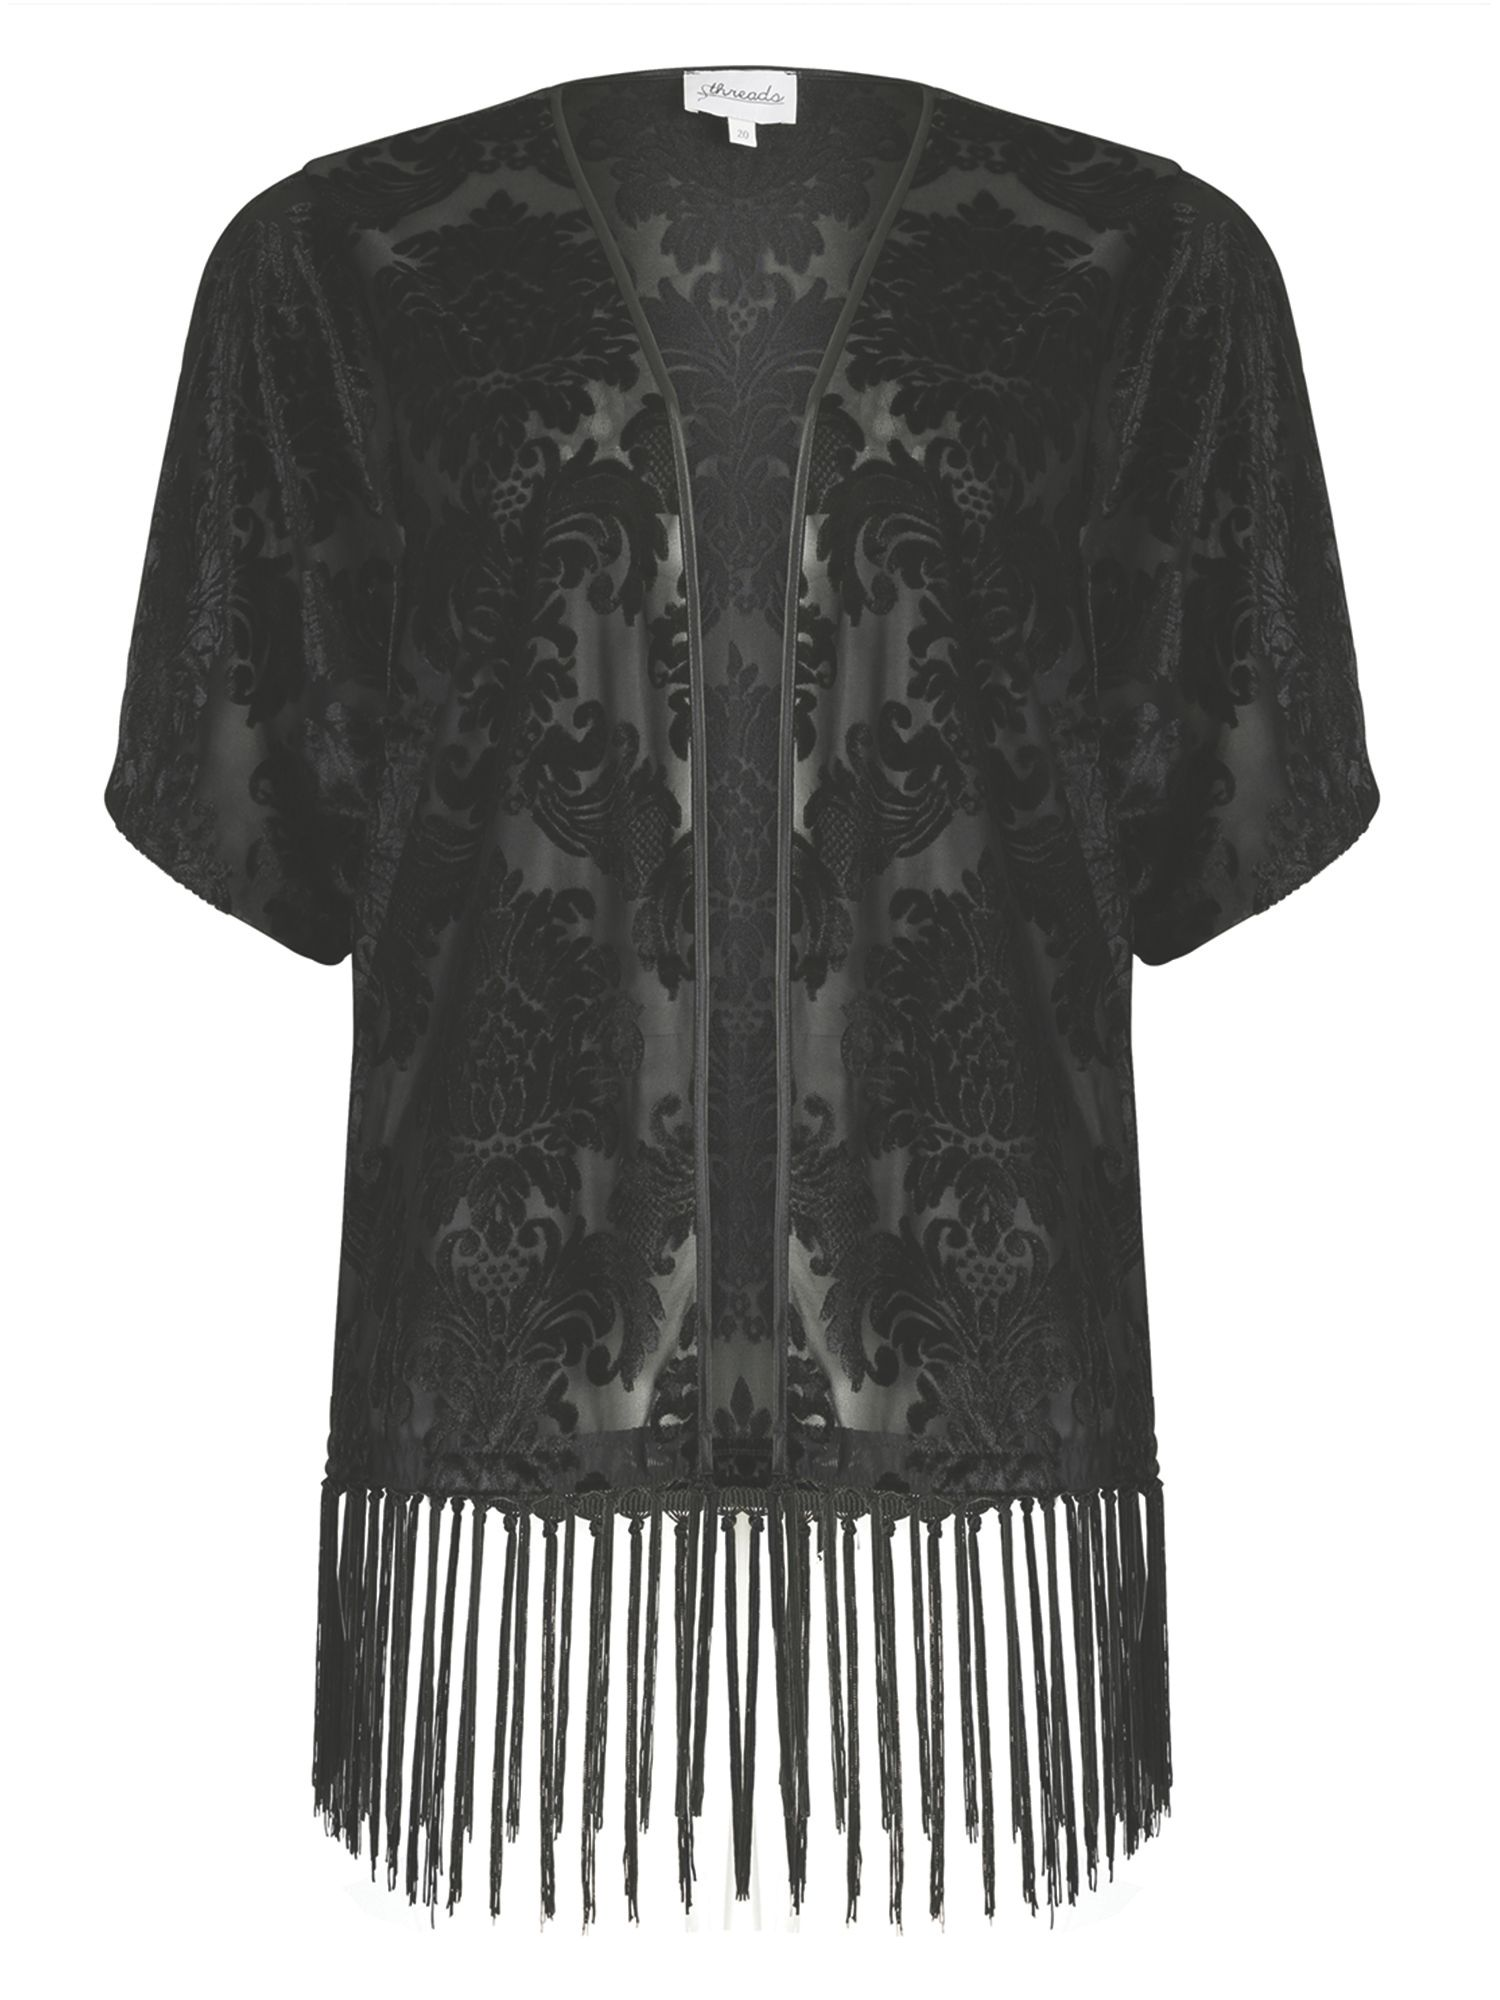 Threads Plus Size Baroque Velvet Kimono Jacket $40.00 AT vintagedancer.com